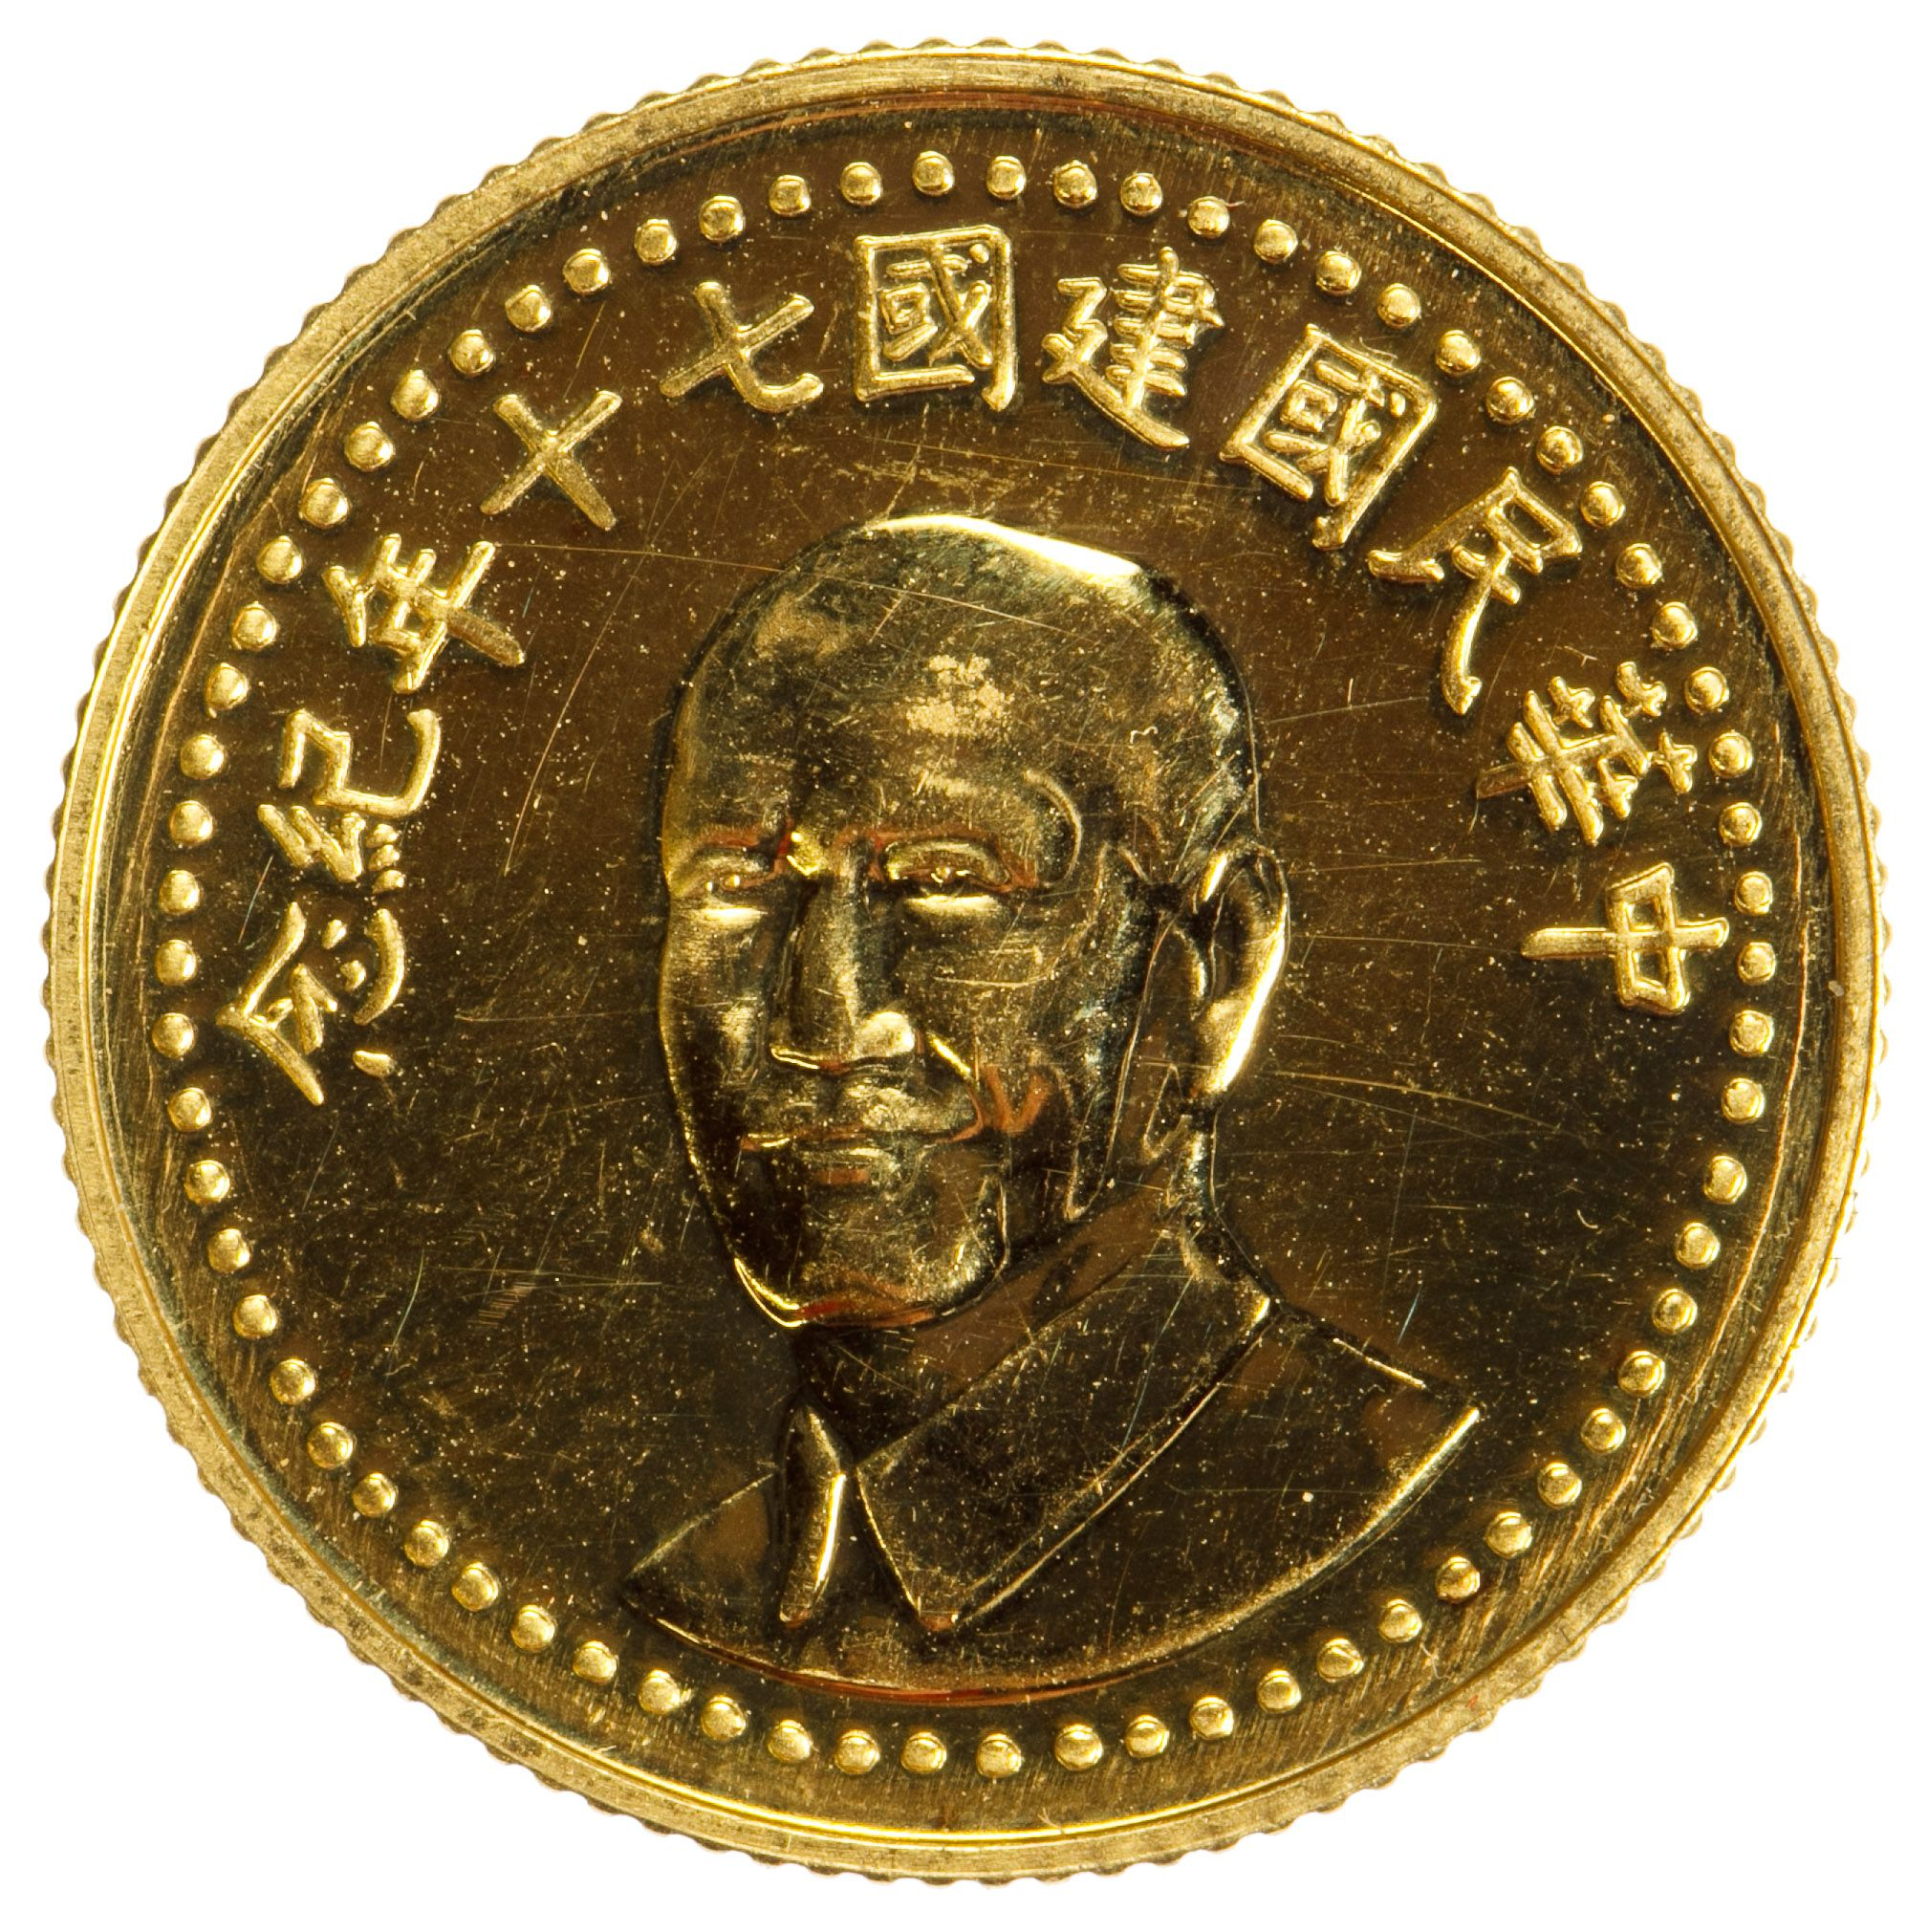 Lot 40: China: 1981 500 Yuan Gold Proof / F D C  Issue